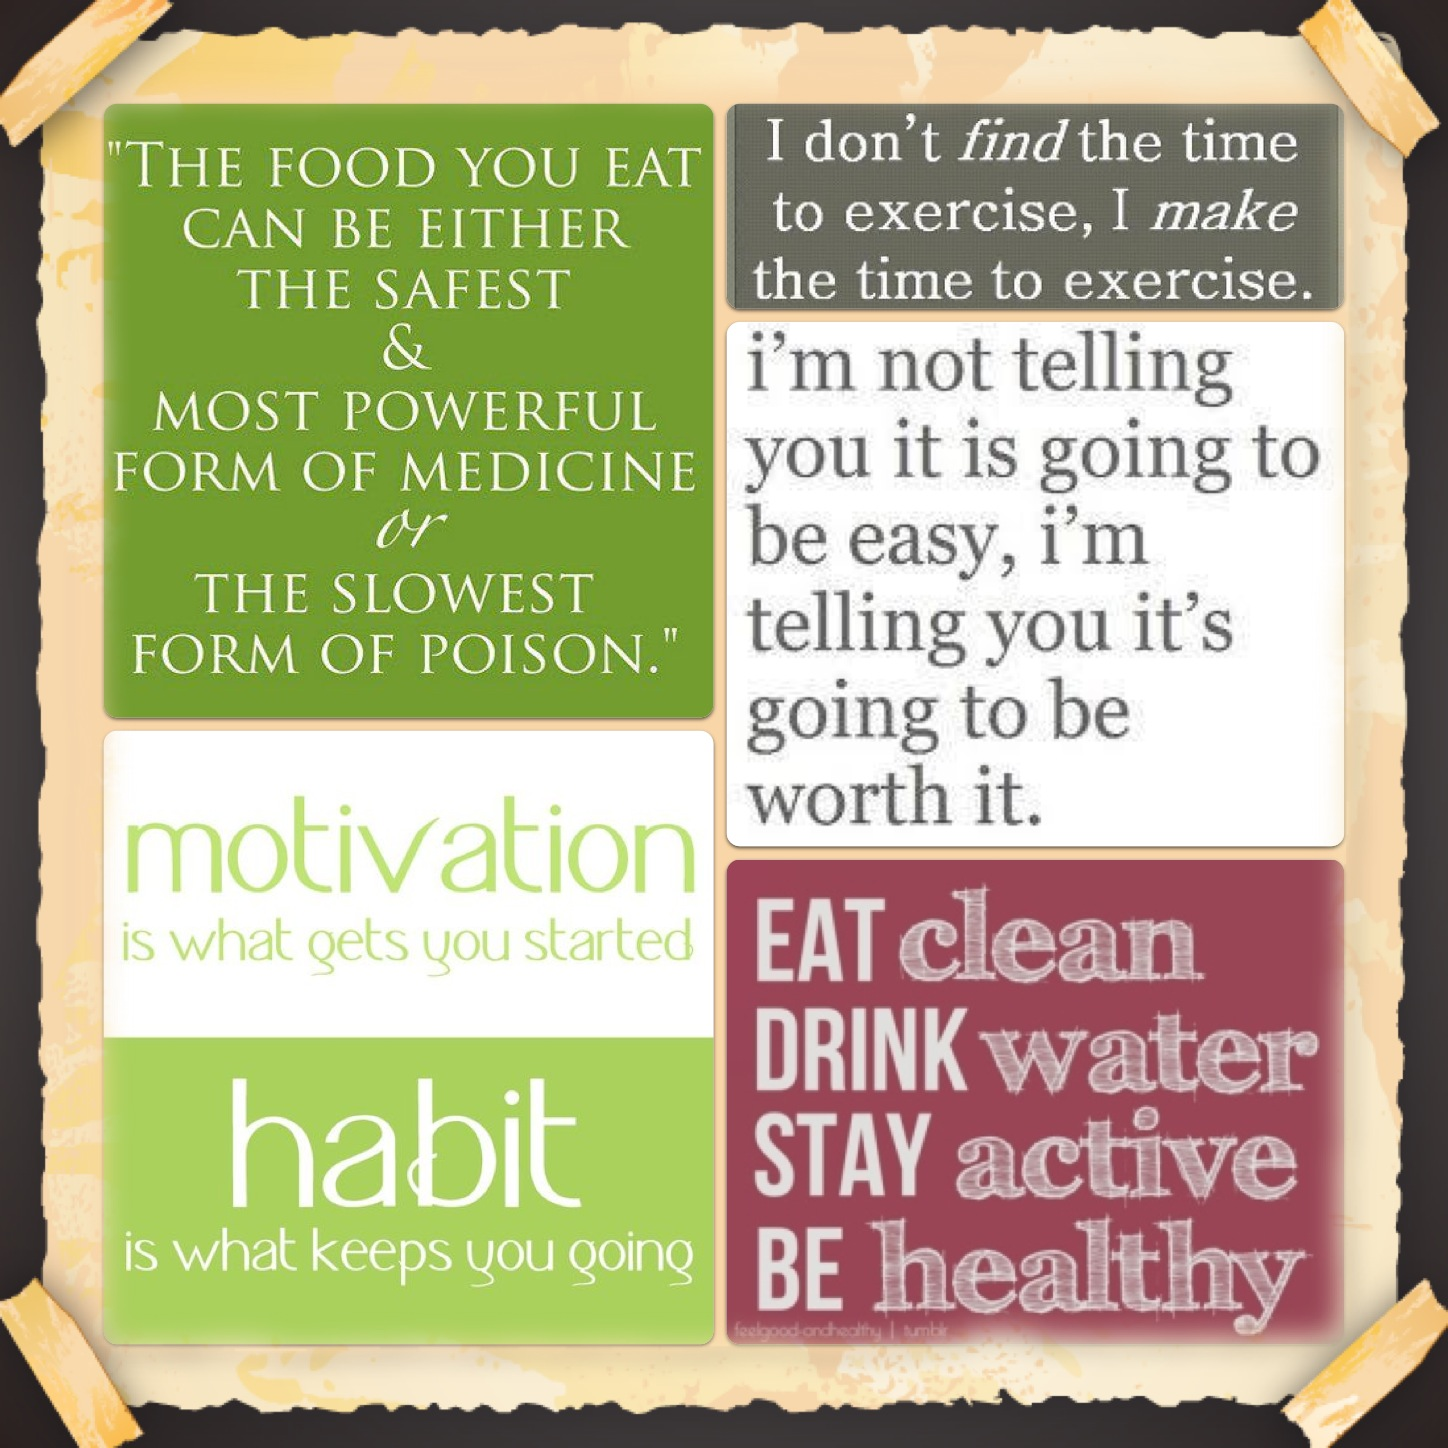 Community: Top 5 Motivational Health Quotes